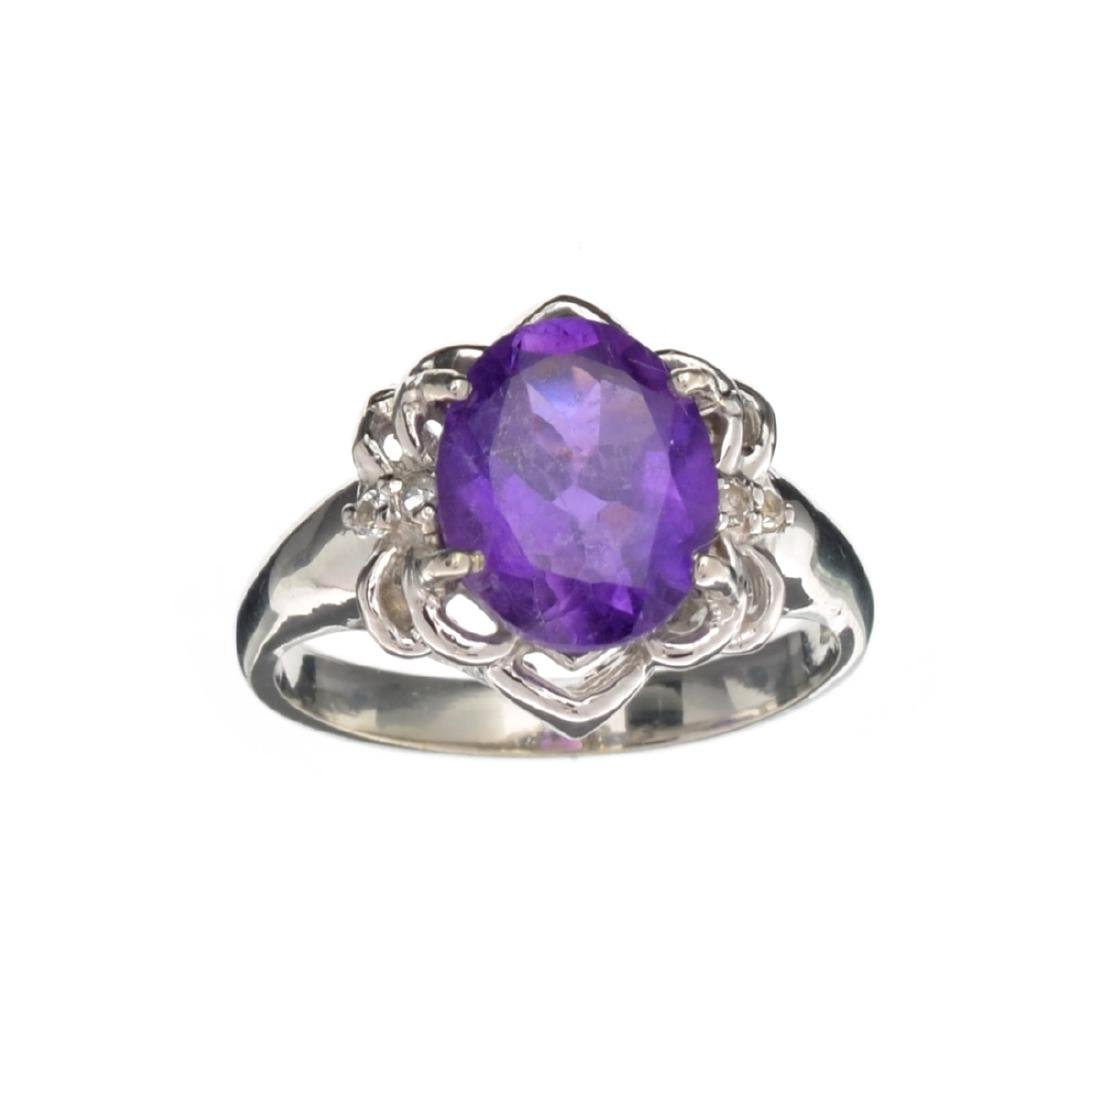 APP: 0.5k Fine Jewelry 3.14CT Purple Amethyst And White